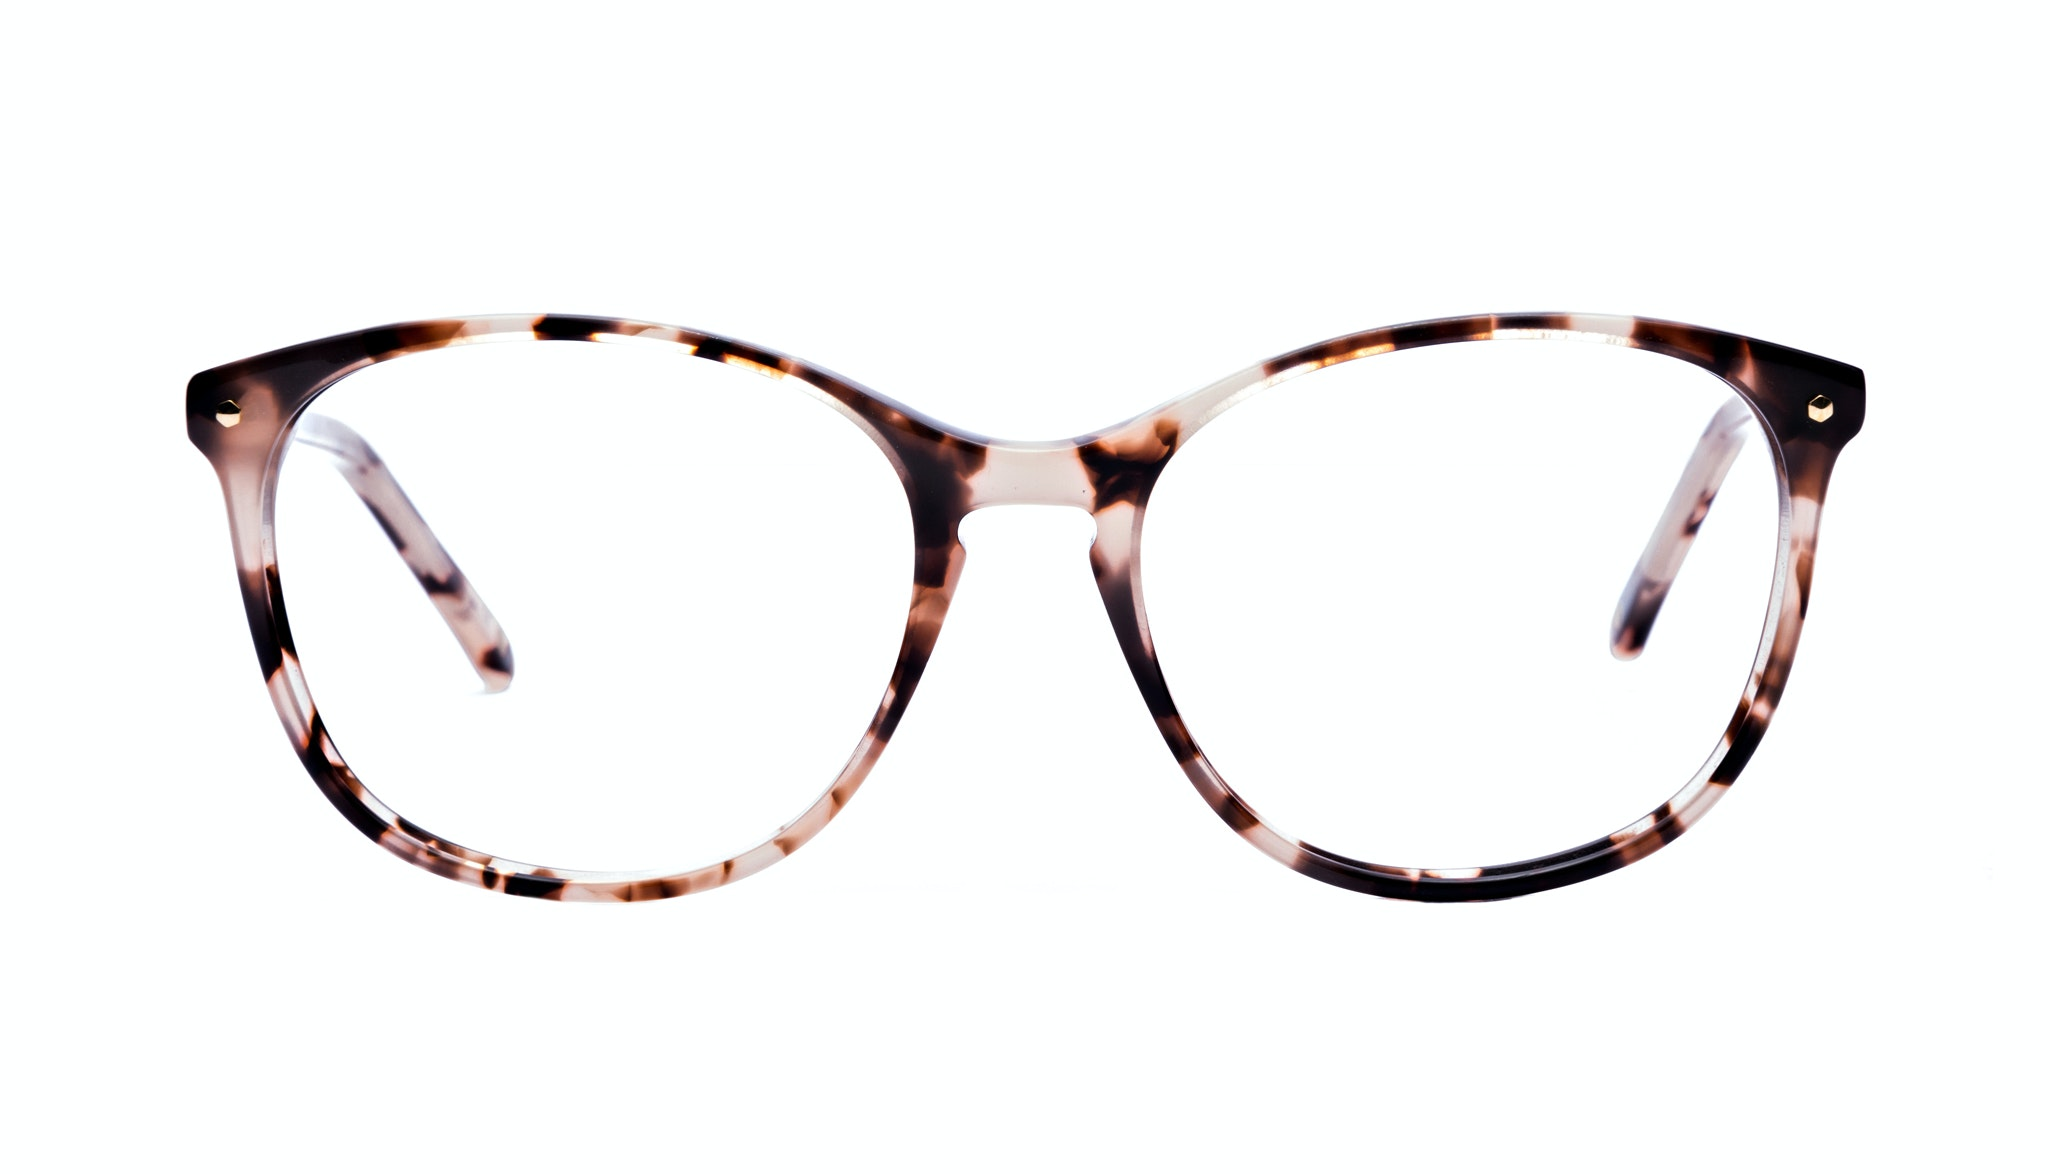 Affordable Fashion Glasses Rectangle Square Round Eyeglasses Women Nadine Pink Tortoise Front